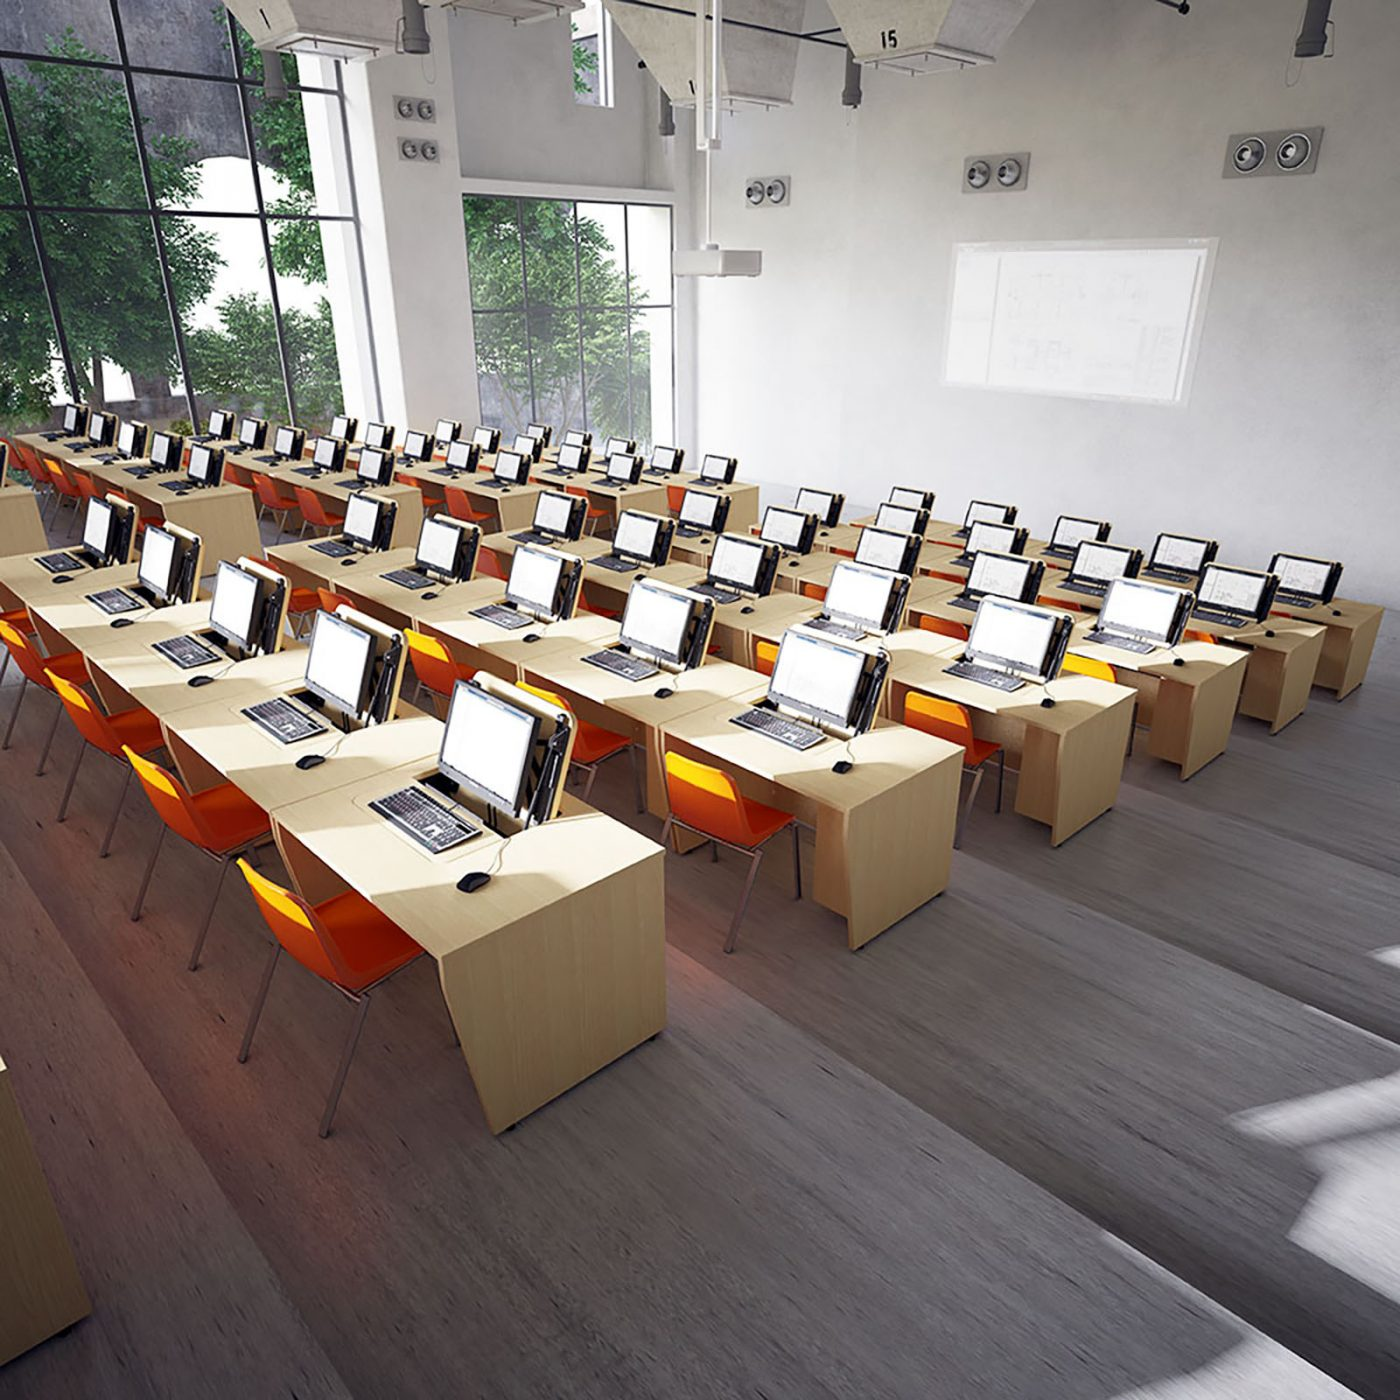 modular desks, IT desks, school furniture, school desks, classroom desks, classroom furniture